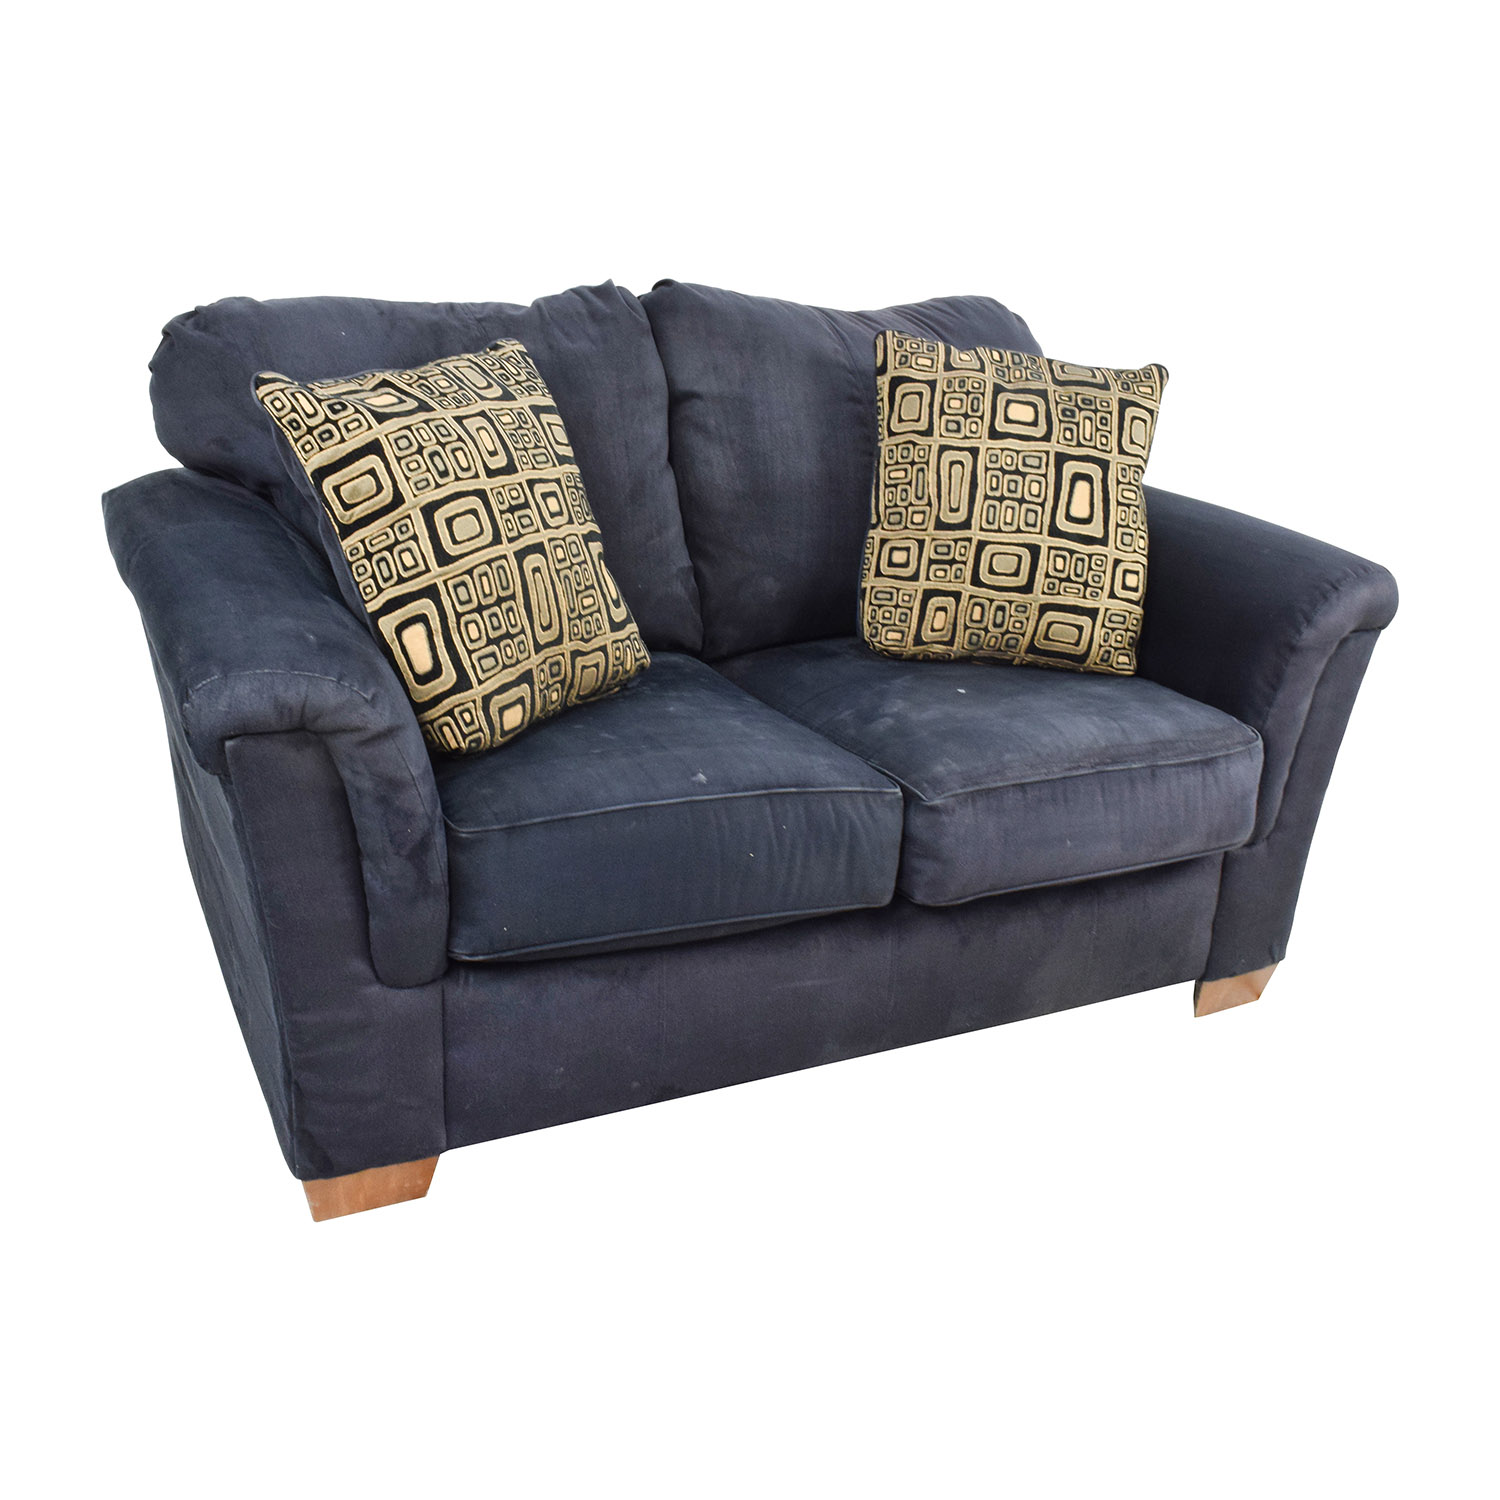 ... Buy Ashley Furniture Janley Loveseat Ashley Furniture ...